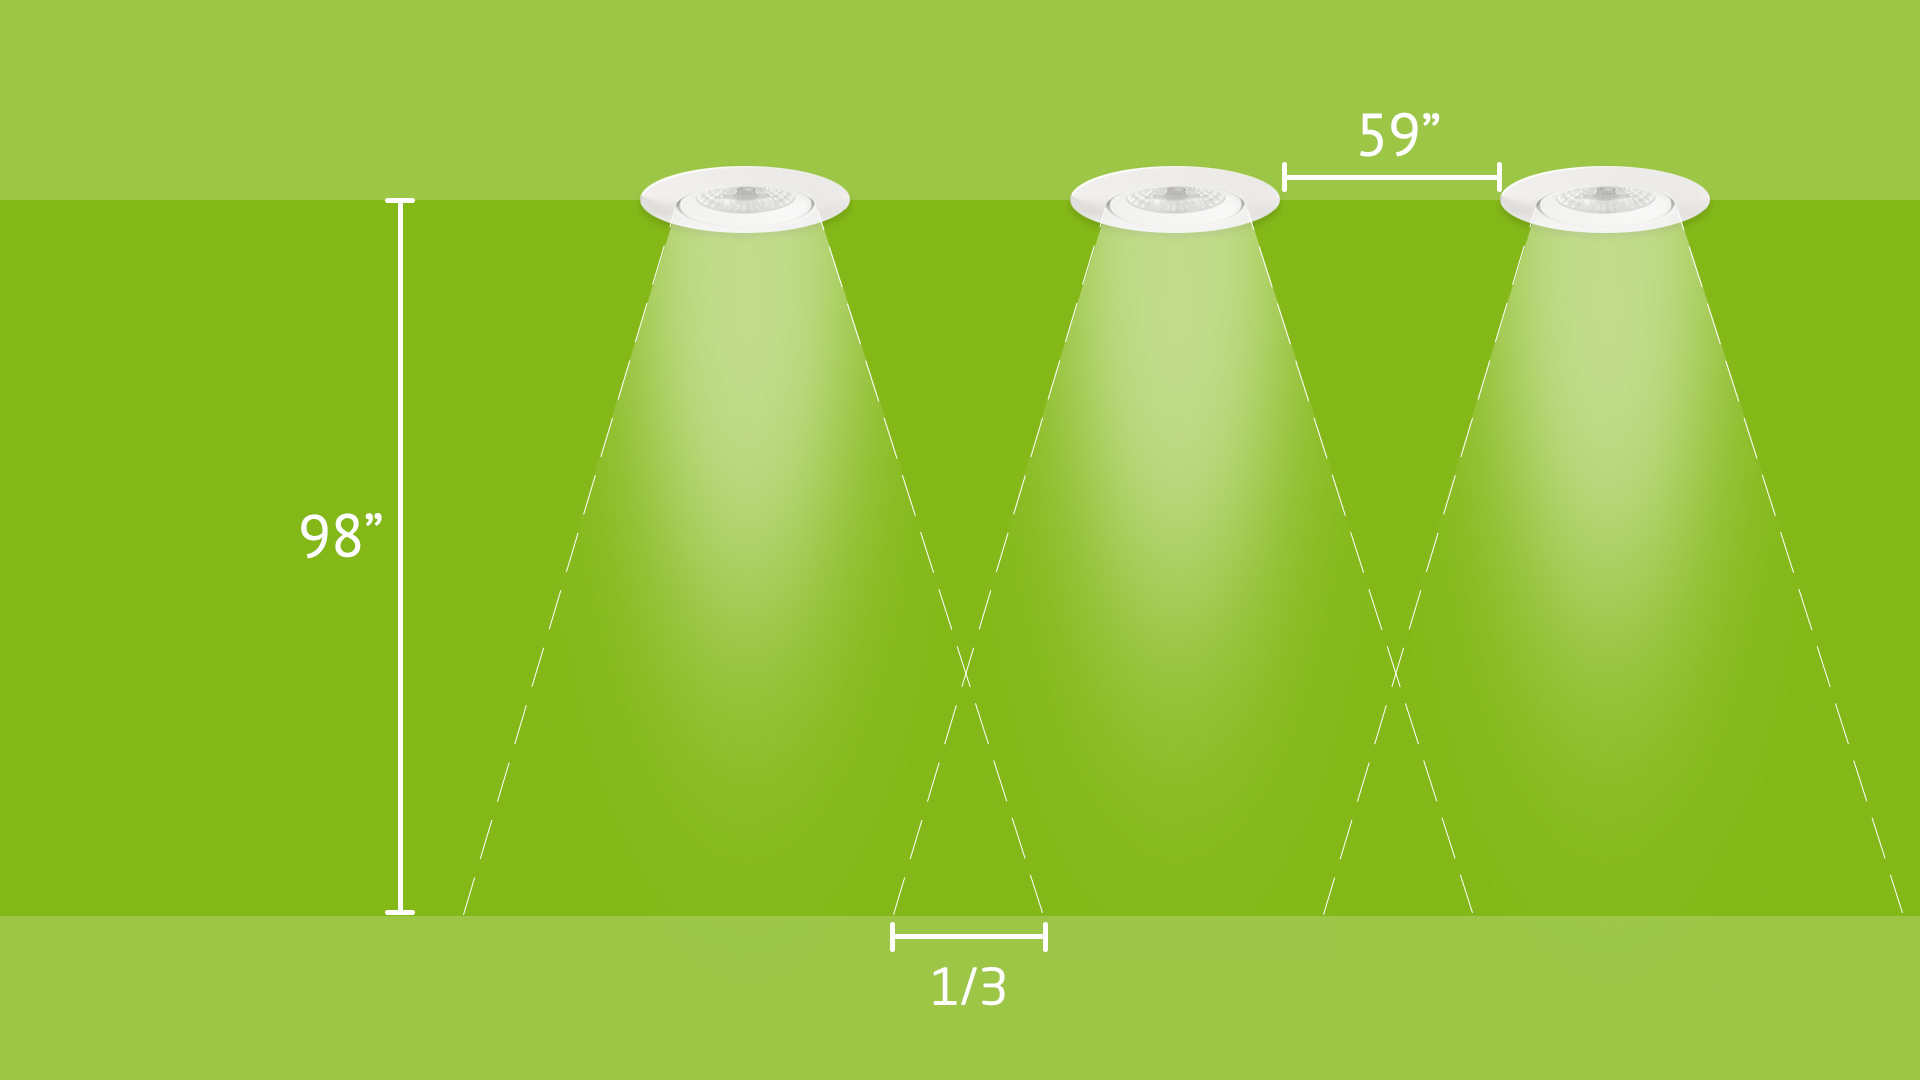 How To Plan Lighting With Led Spotlights 24v Spotlight Wiring Diagram The Below Assuming A Room Height Of About 98 And Space Between Spots 59 Get Perfect Illumination Enough Light